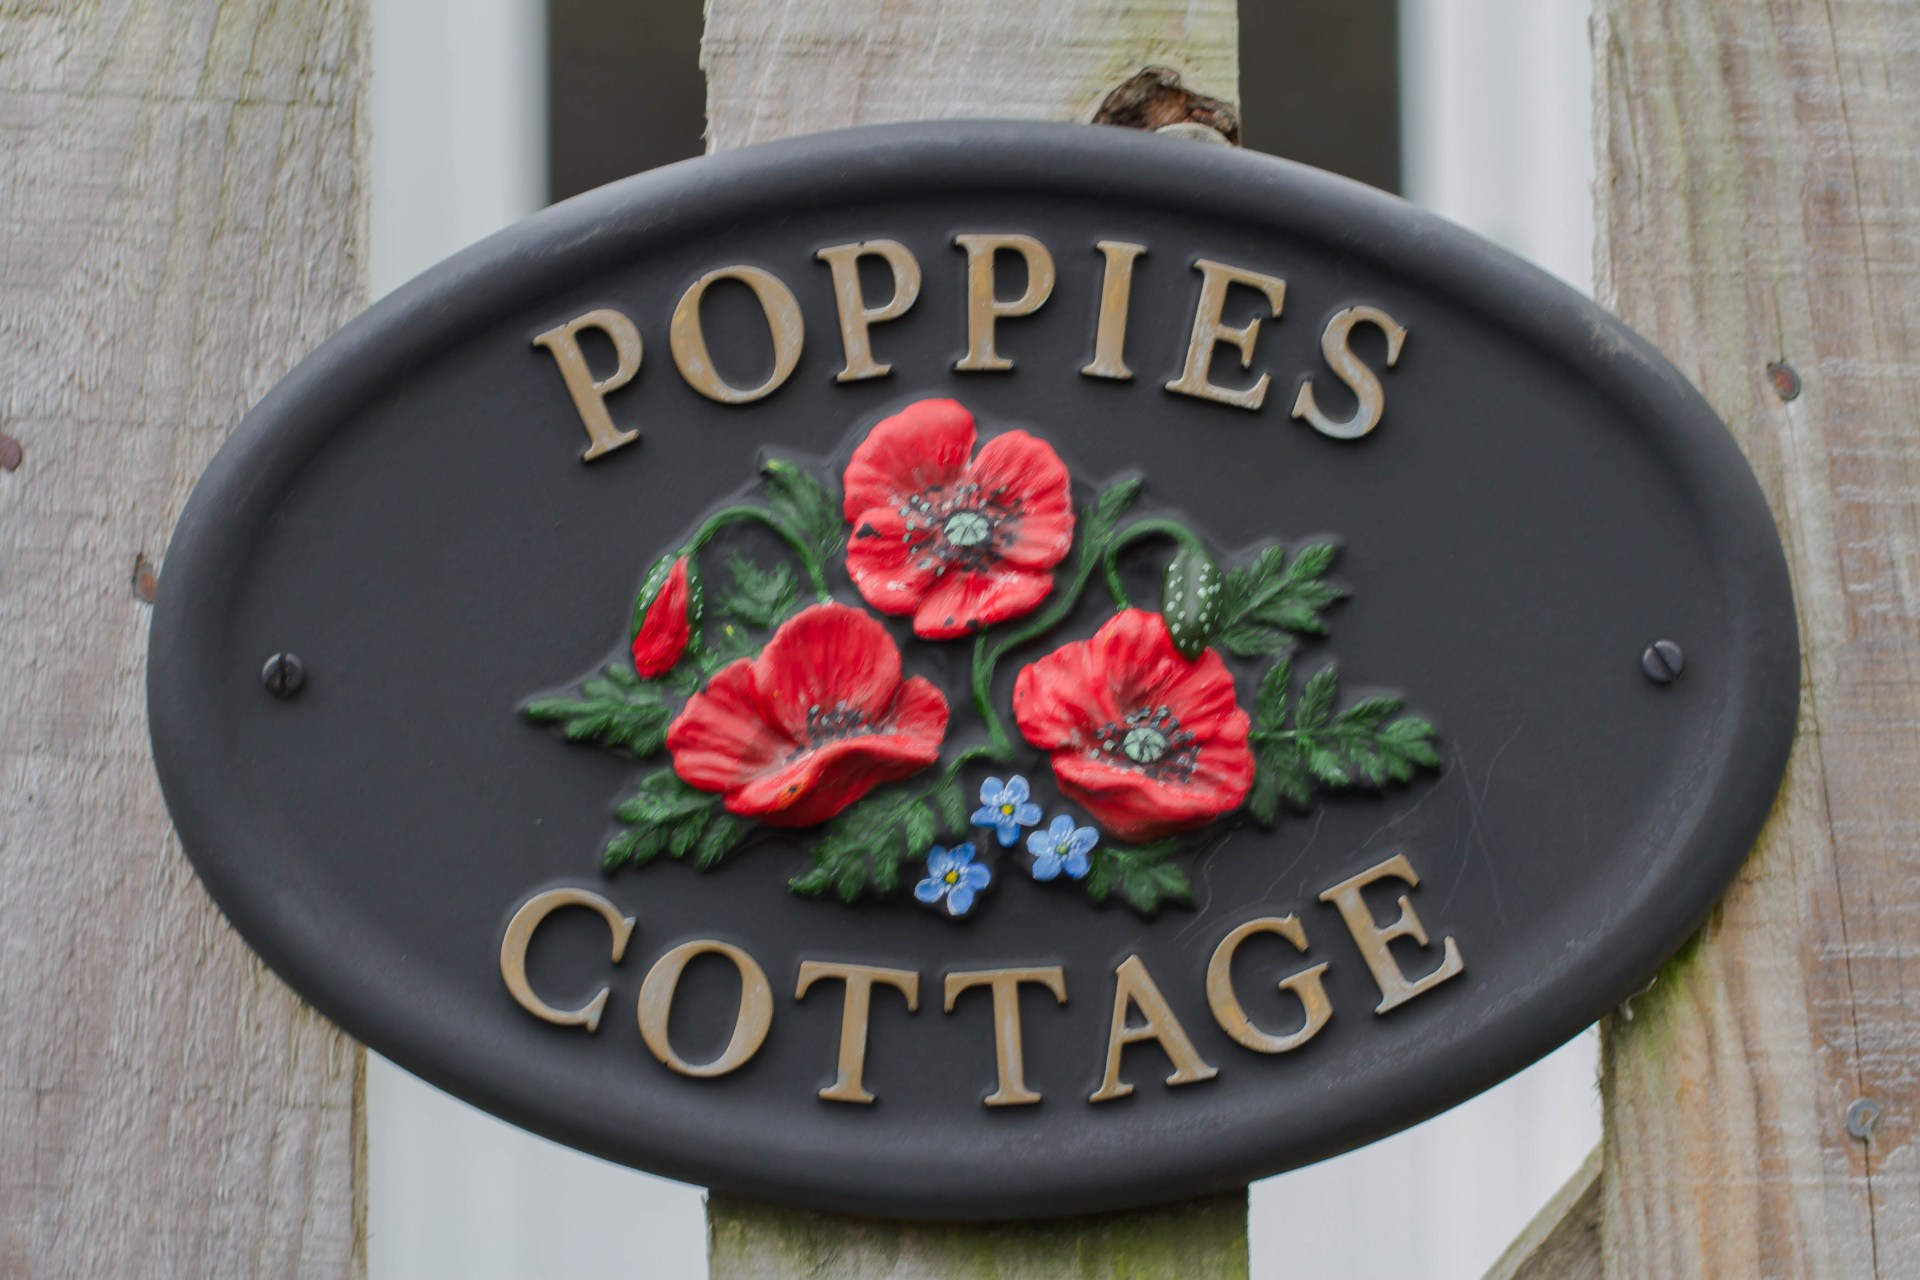 Poppies Cottage, Isle of Mull, Scotland